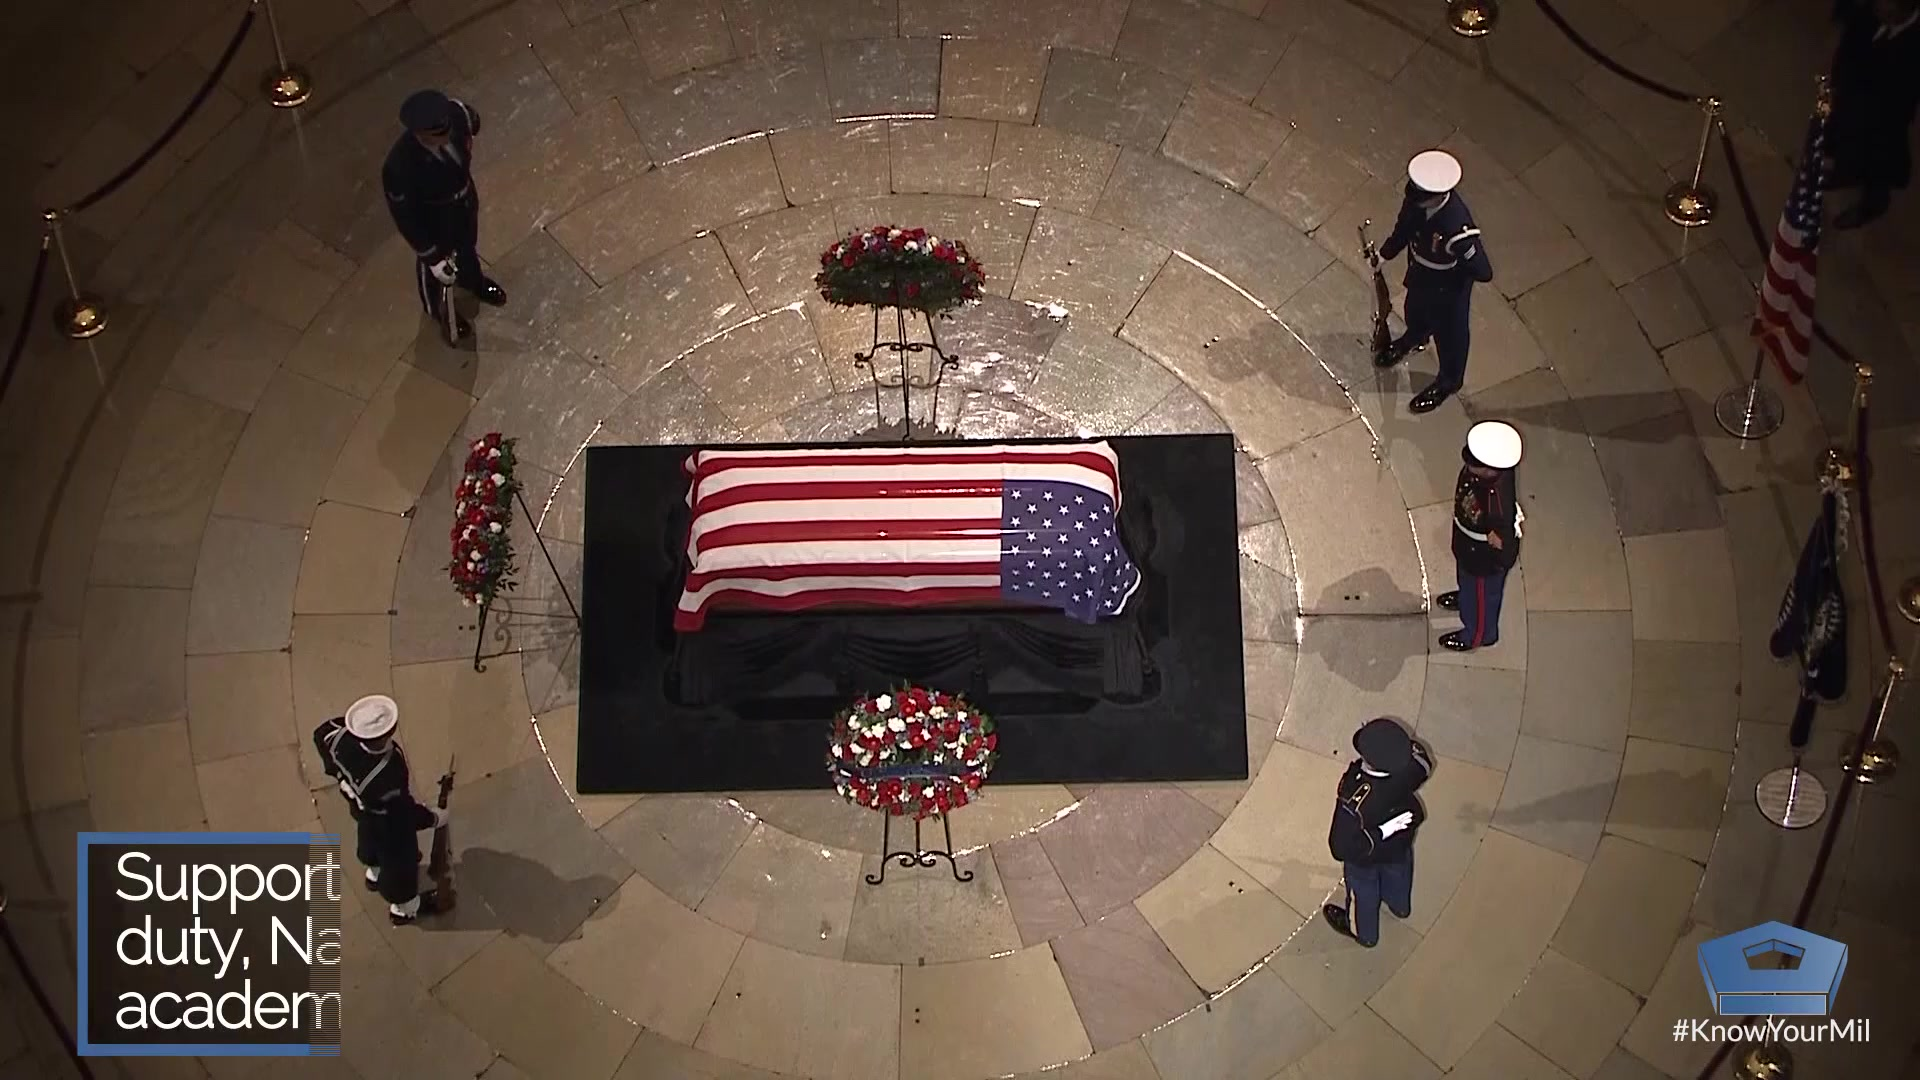 Funeral for former President George H.W. Bush.